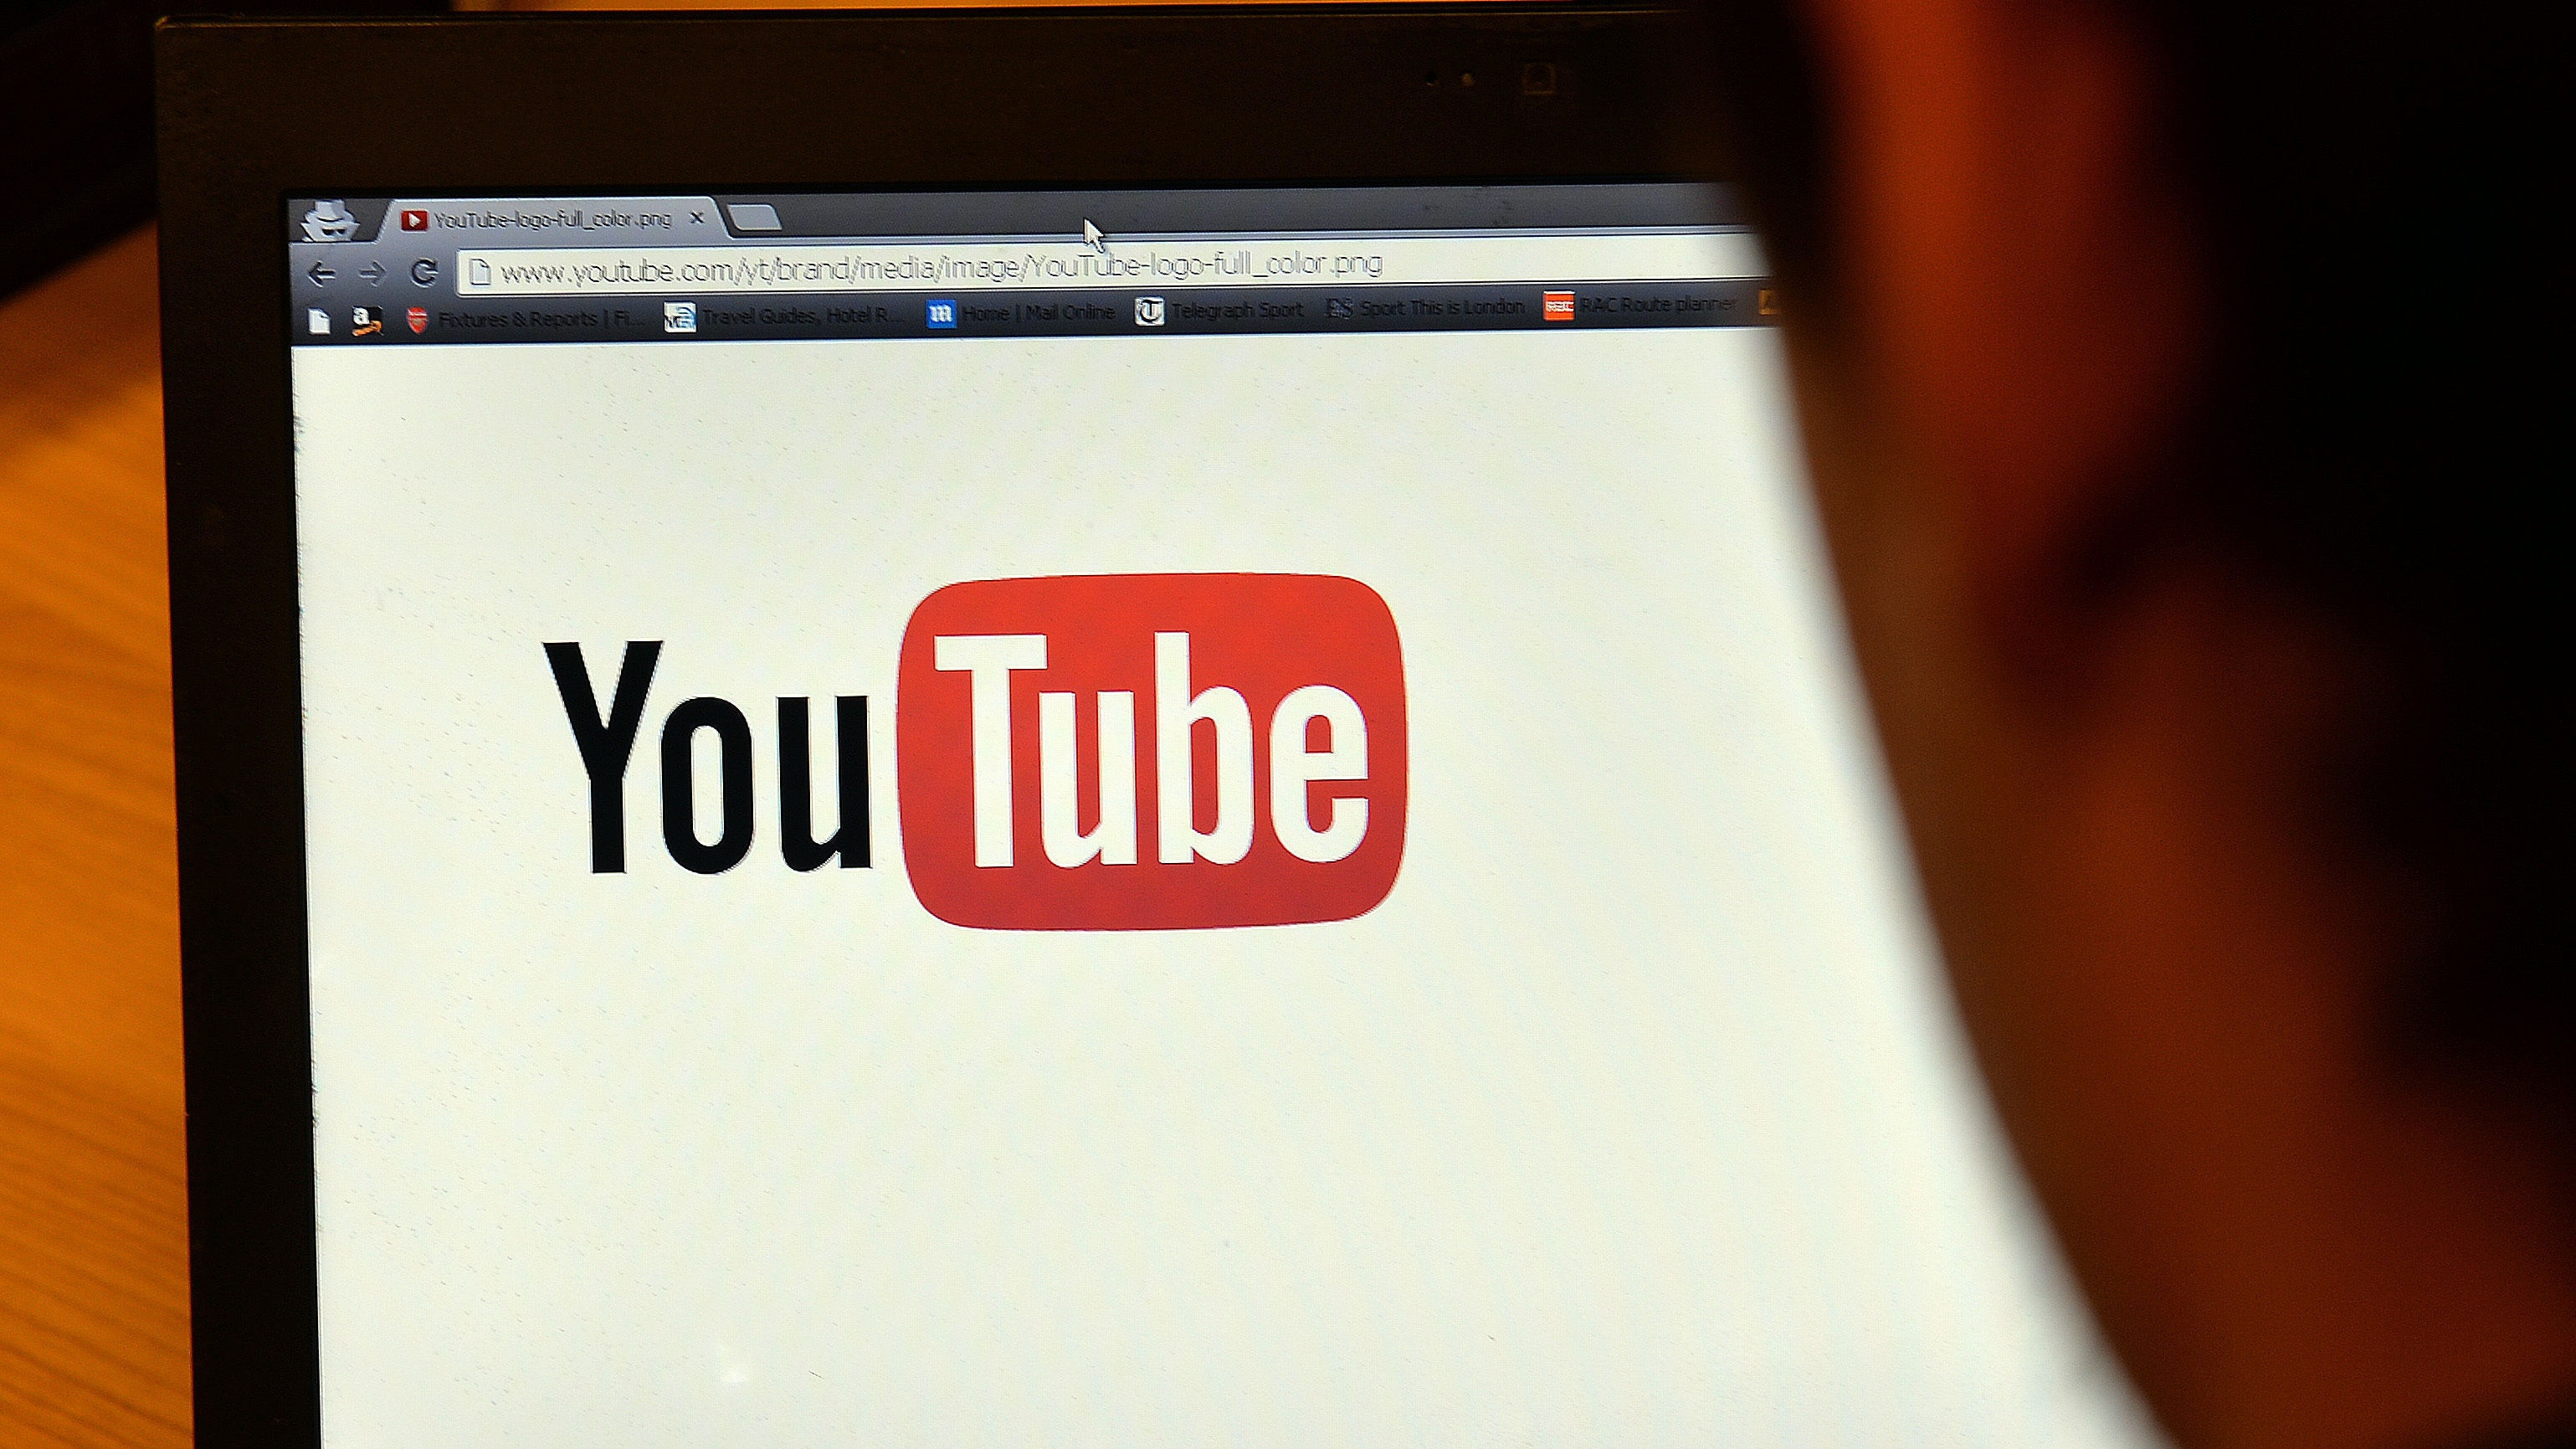 YouTube announces Wikipedia plans without actually telling Wikipedia first